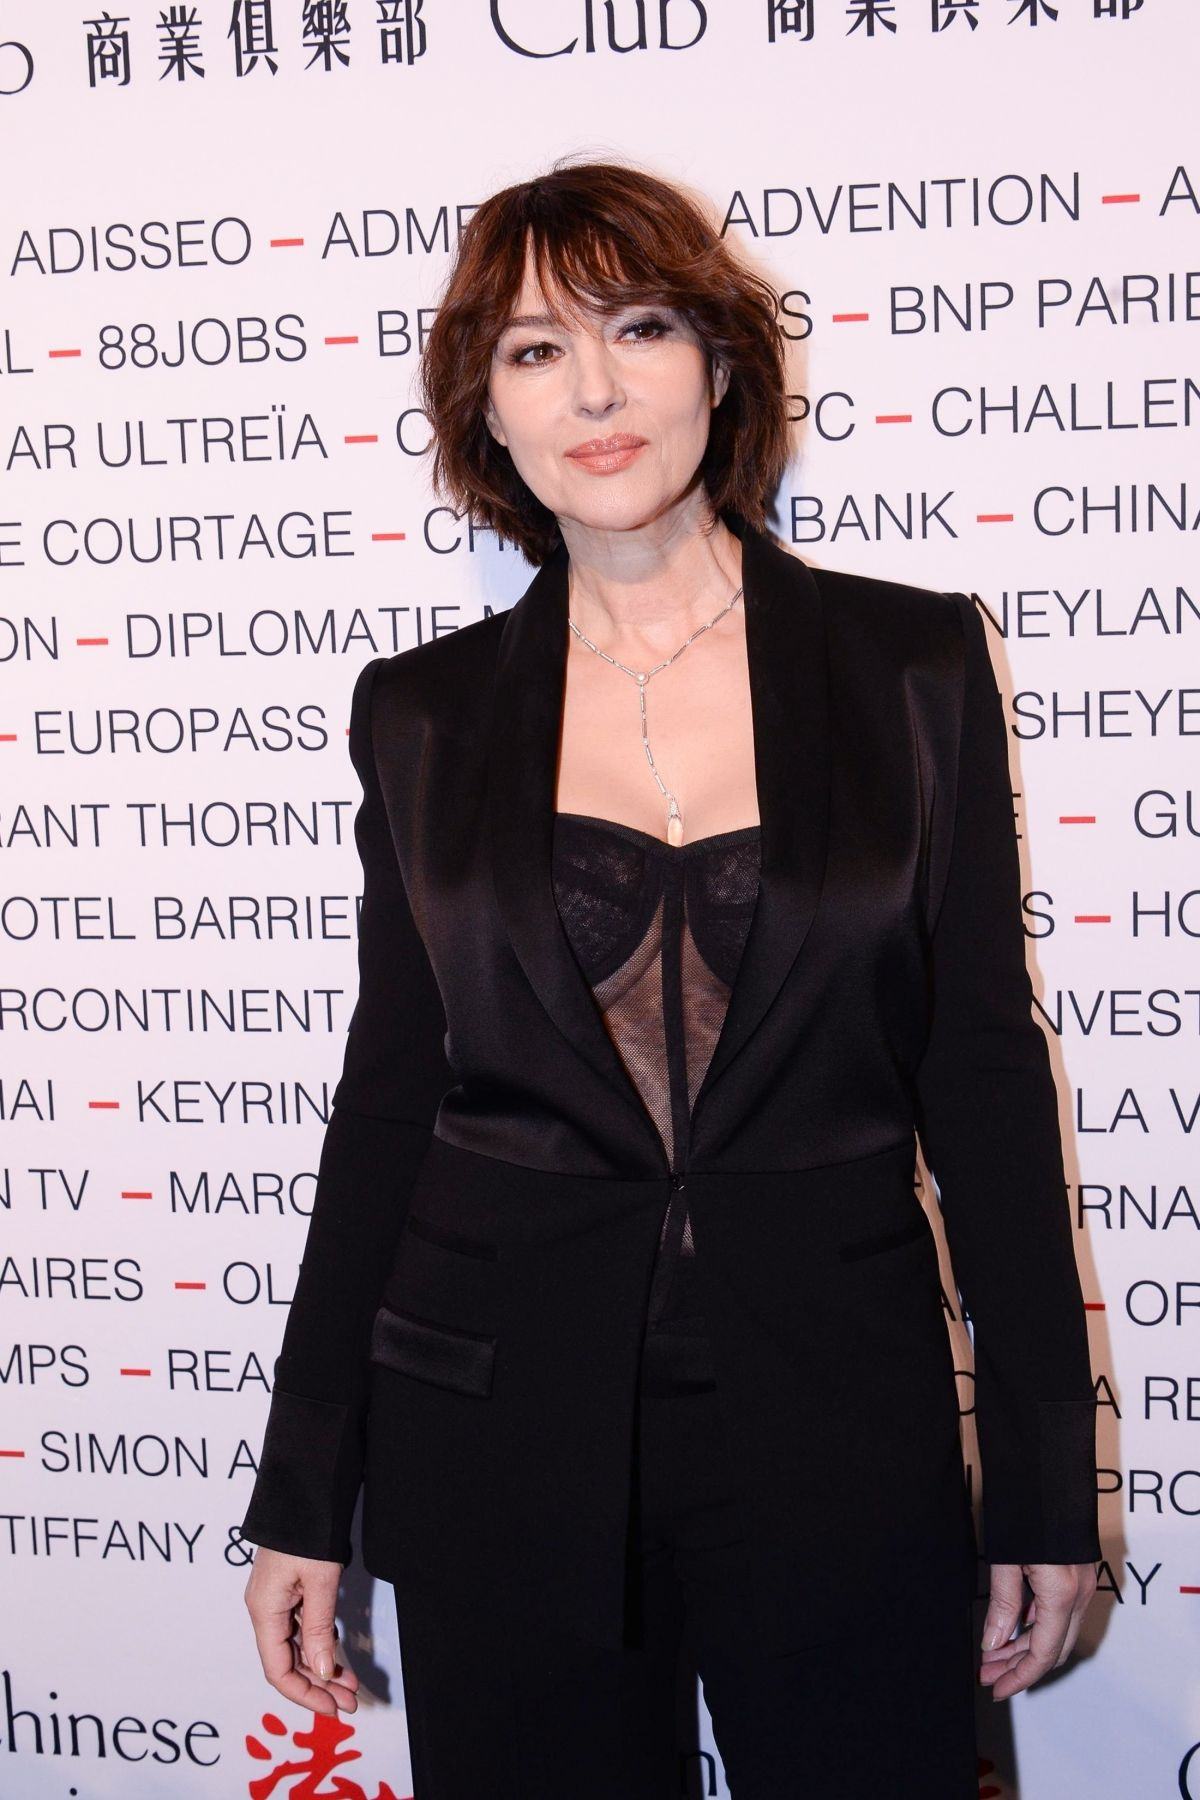 Monica Bellucci – Chinese Business Club Dinner in Paris 9 March, 2020